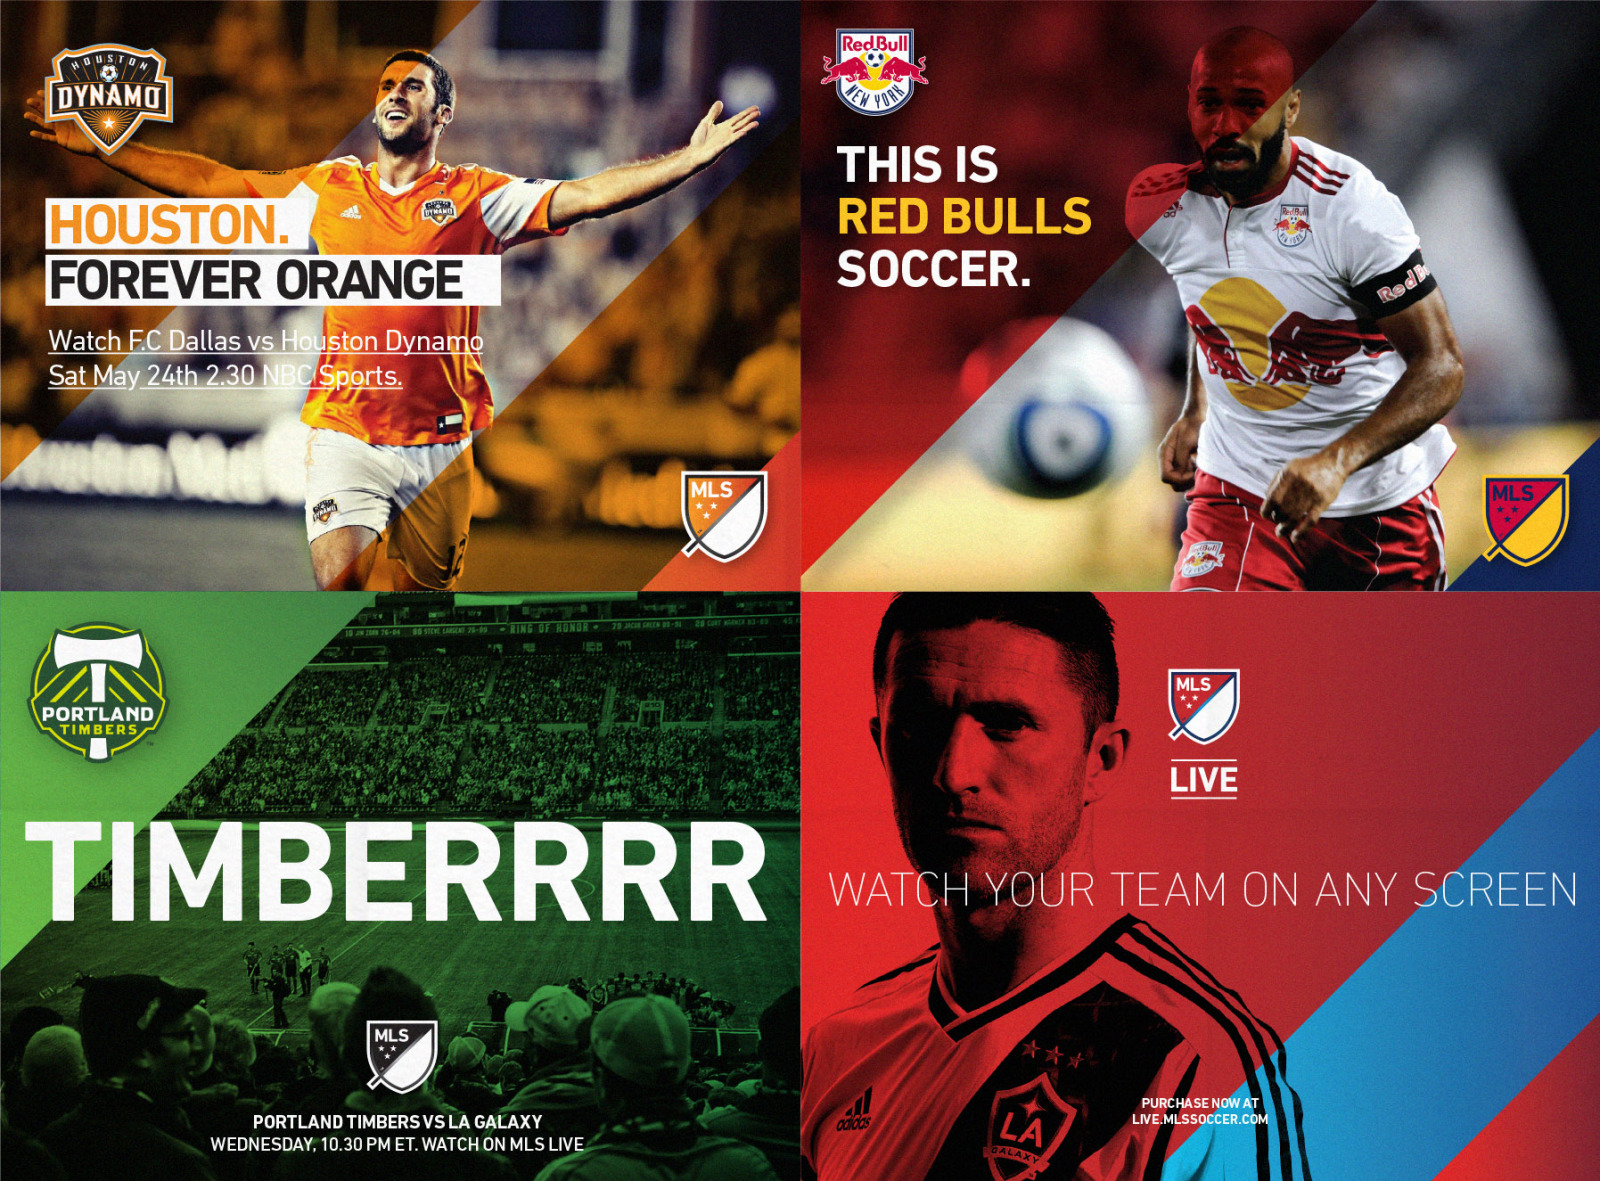 MLS_MARKETING_POSTER-1600x1181.jpg